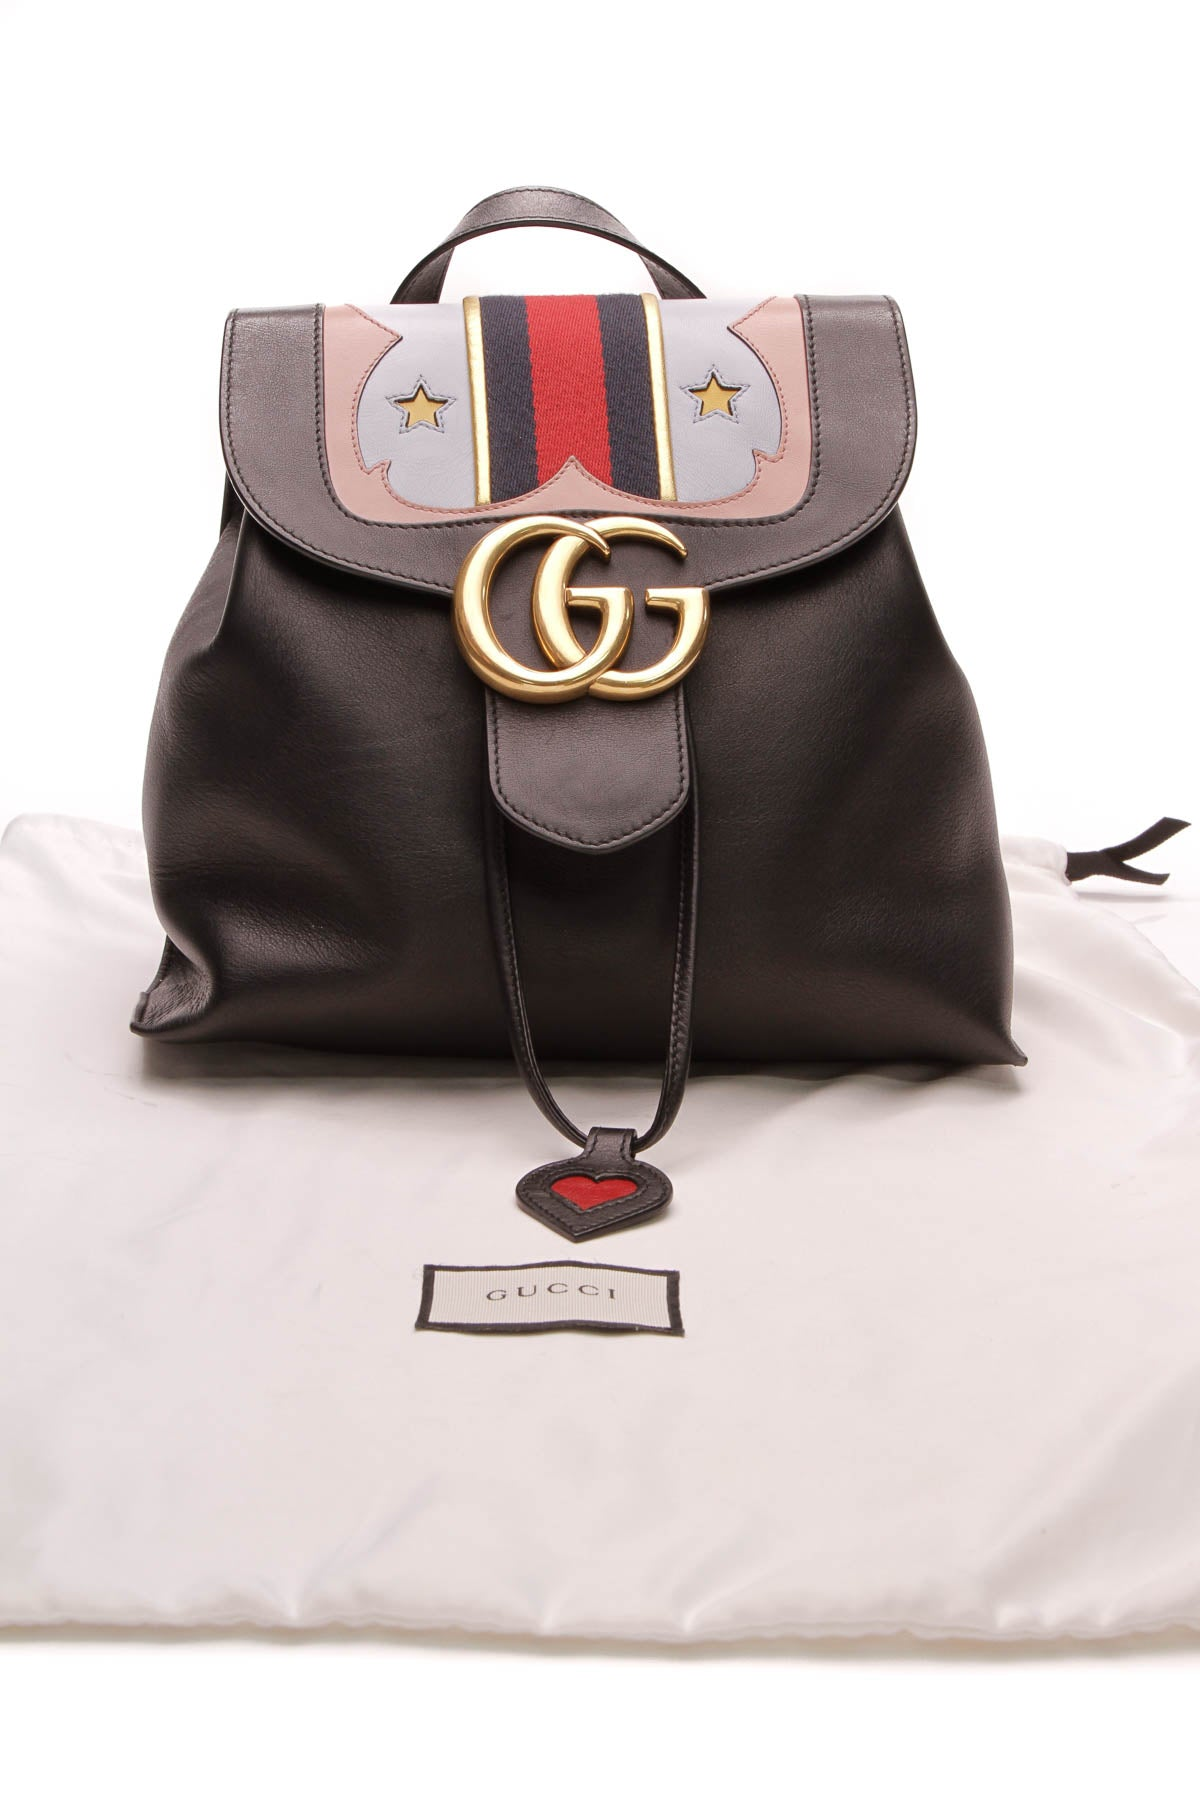 05e387a95609 Gucci GG Marmont Backpack - Black – Couture USA